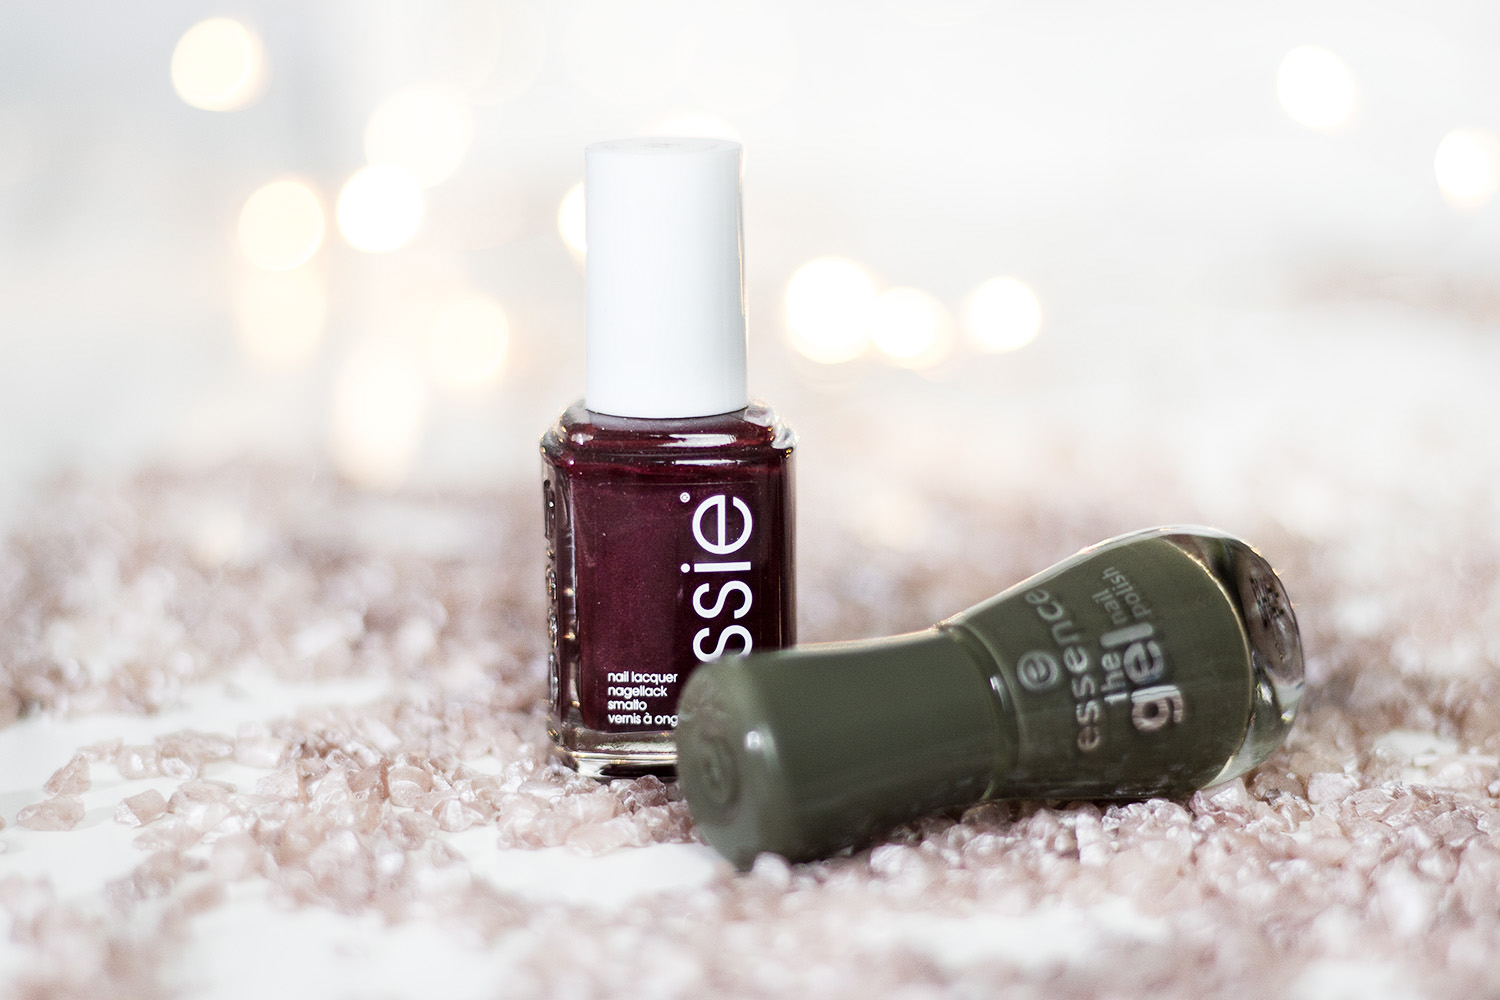 Winter Beauty Must Haves, Kosmetik, essie Nagellack, thigh high, essence Nagellack, olive you, bezauberndenana.de